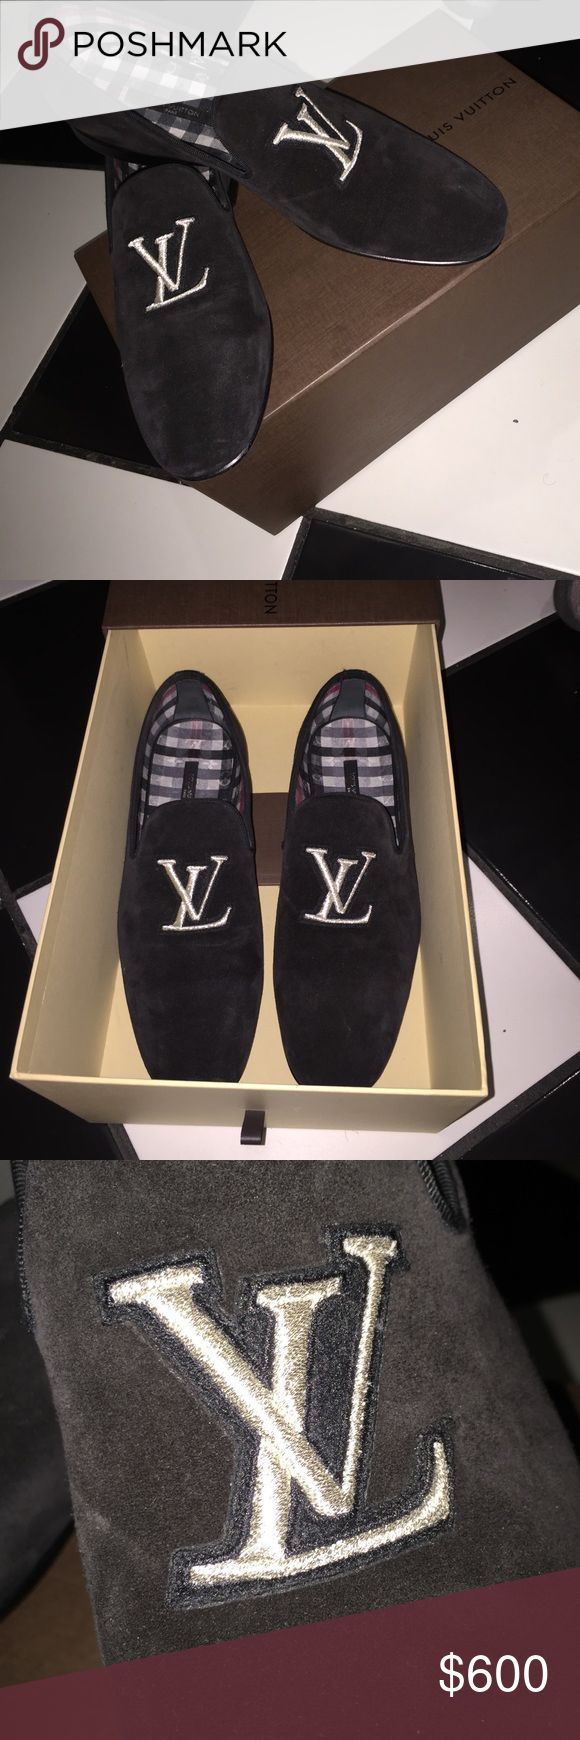 Louis Vuitton Loafers Louis Vuitton men's loafers. Calf suede with embroidered LV logo.... leather sole.100% authentic. Worn around the house to try on. My boyfriend is just getting some goodies out of his closet. Soft and comfortable. Brand new Louis Vuitton Shoes Loafers & Slip-Ons